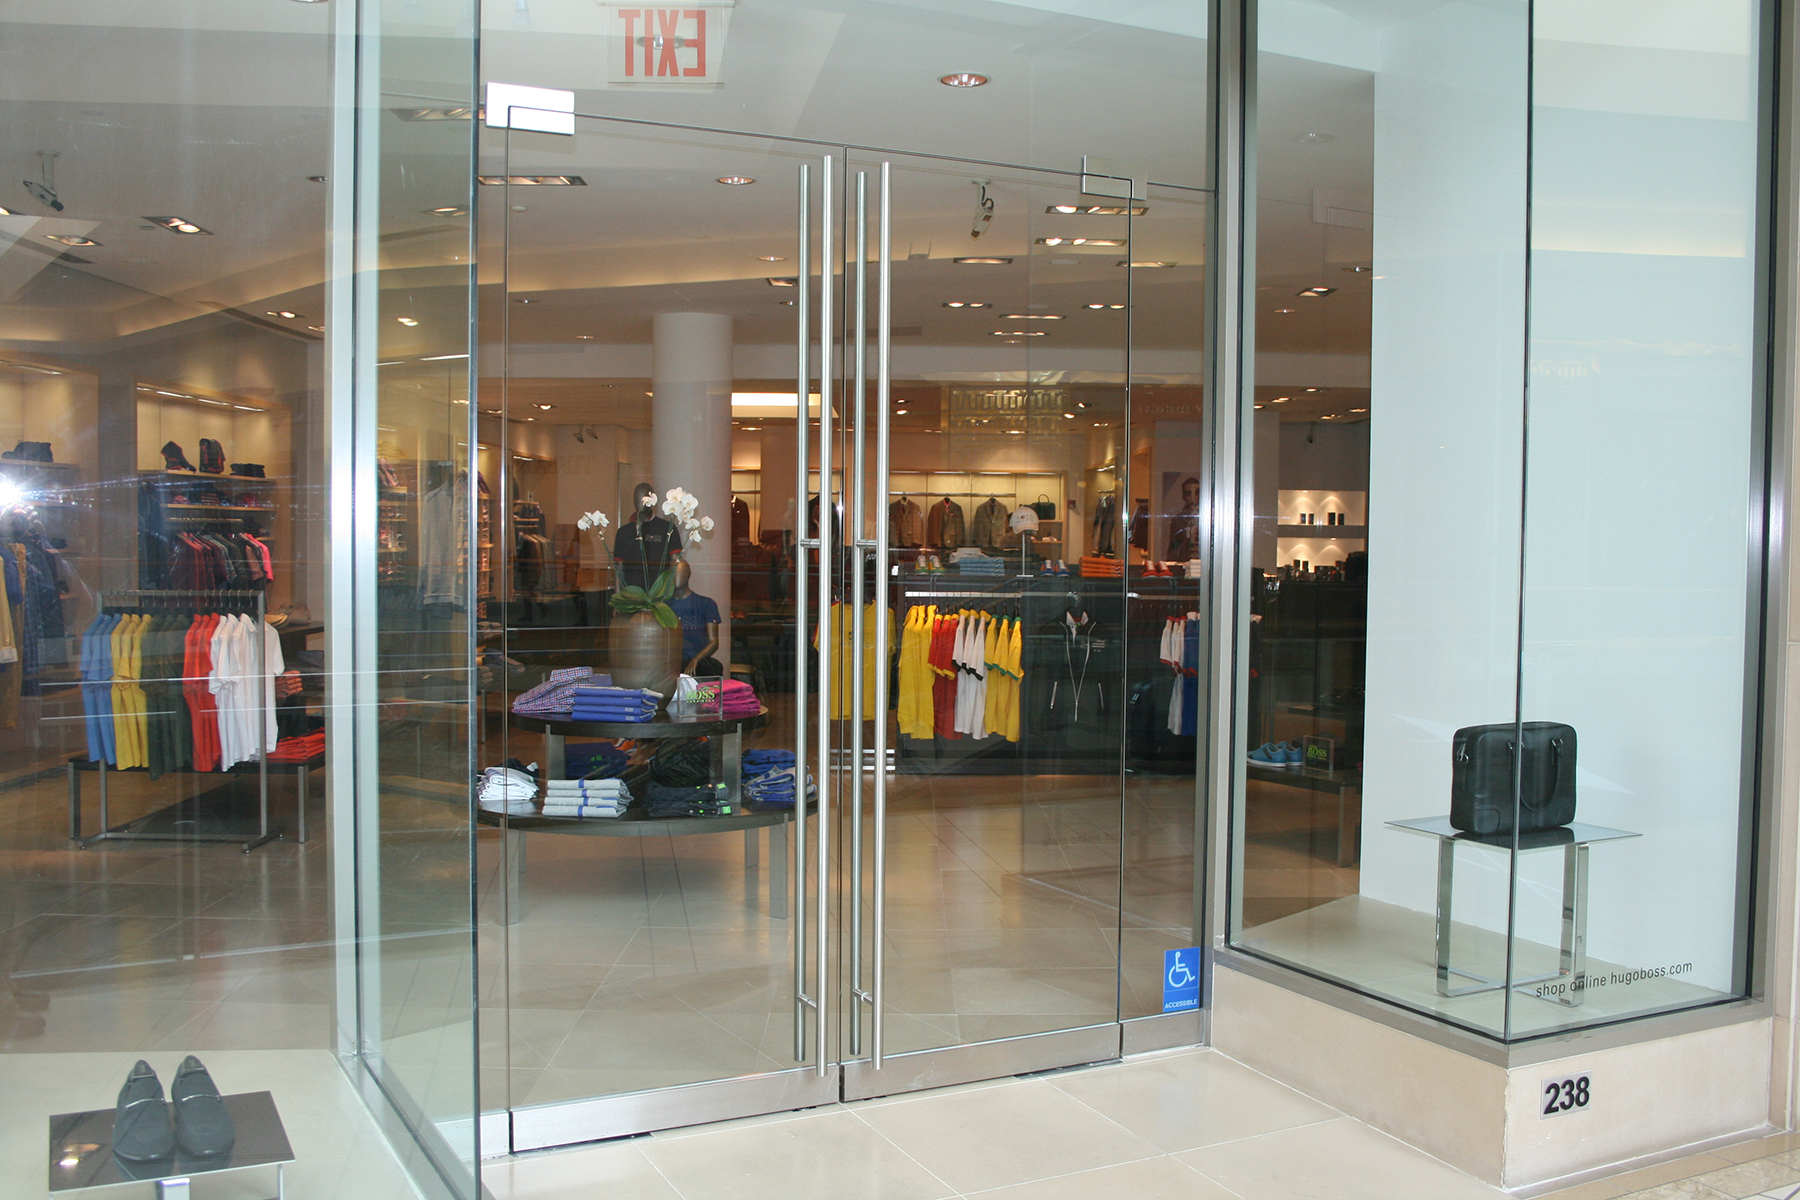 Frameless glass storefront door - Buy Now Posted In Frameless Storefront Glass Storefront